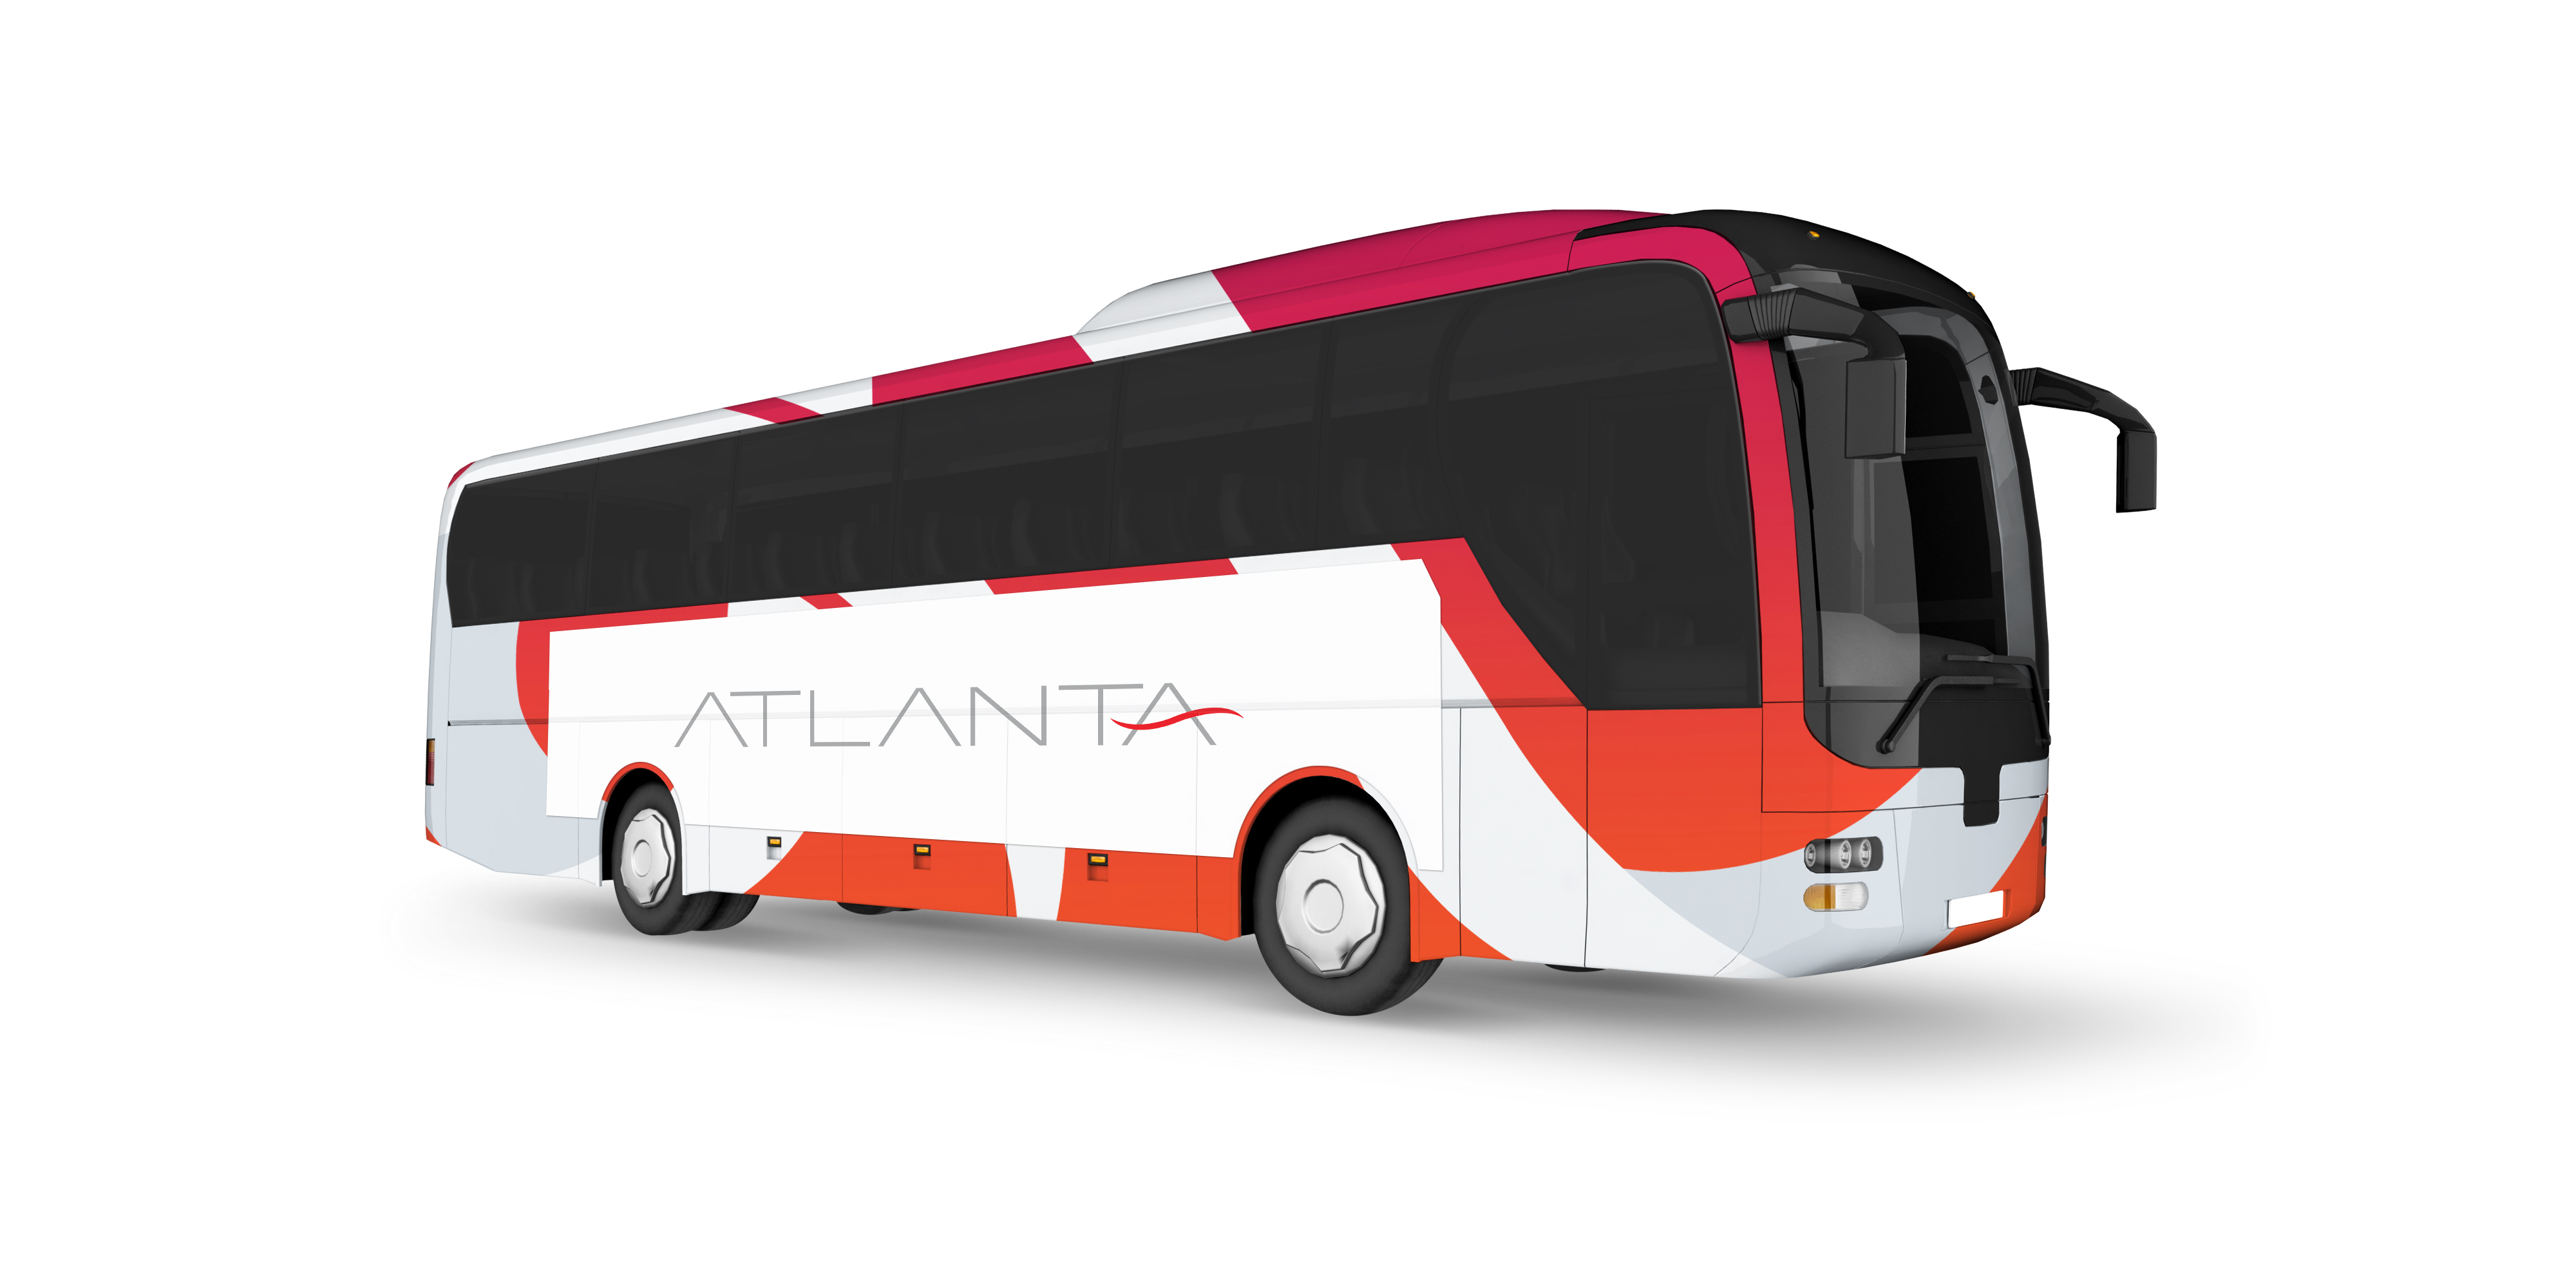 ATLANTA tourbus MOCKUP